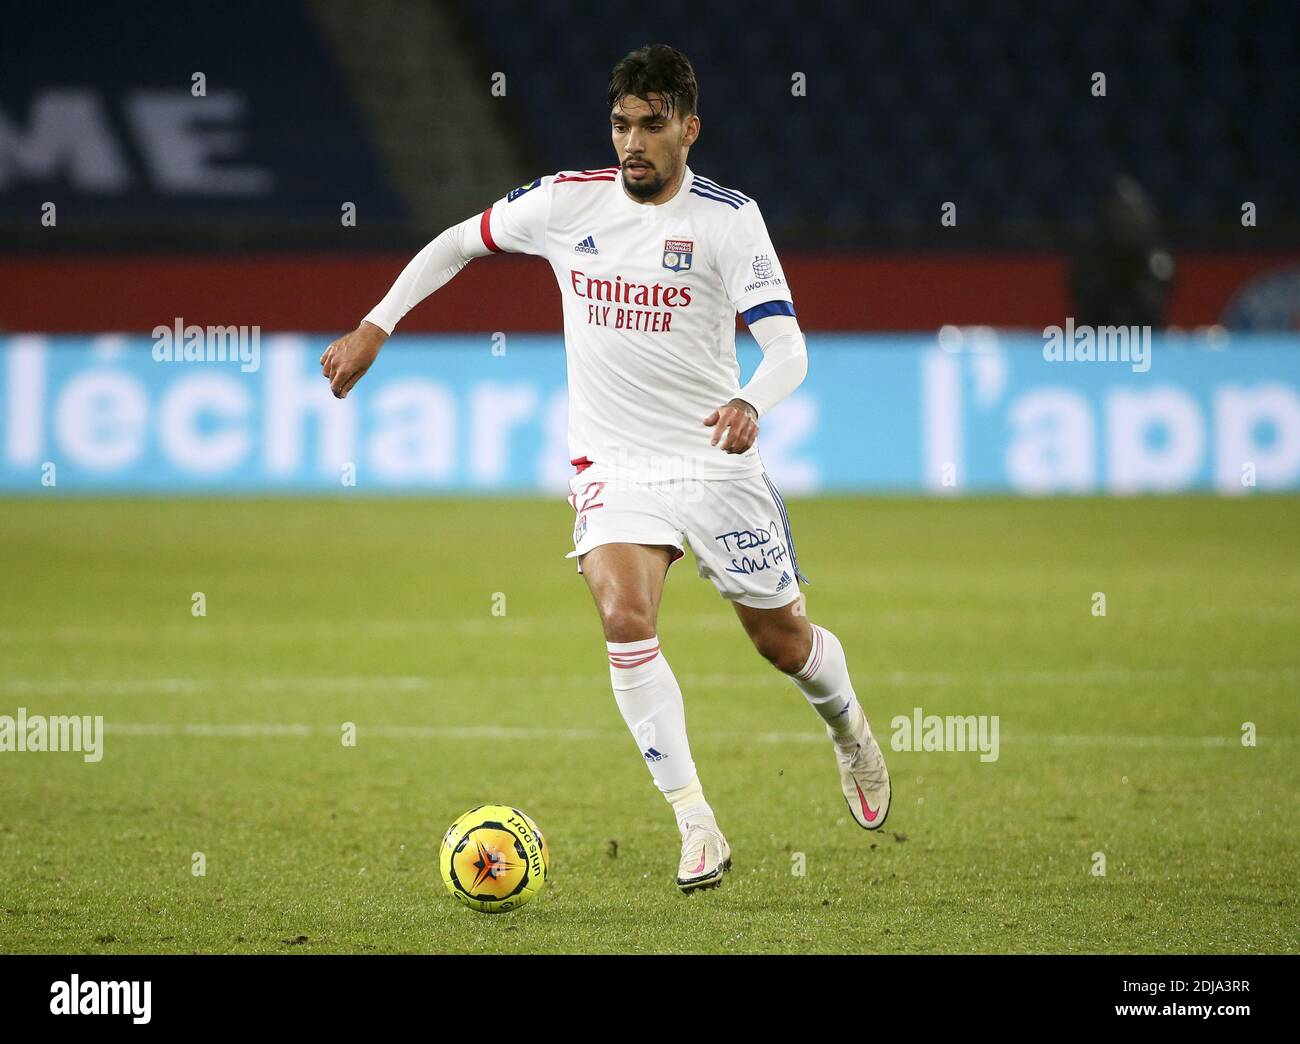 Lucas Paqueta of Lyon during the French championship Ligue 1 football match between Paris Saint-Germain (PSG) and Olympique Lyon / LM Stock Photo